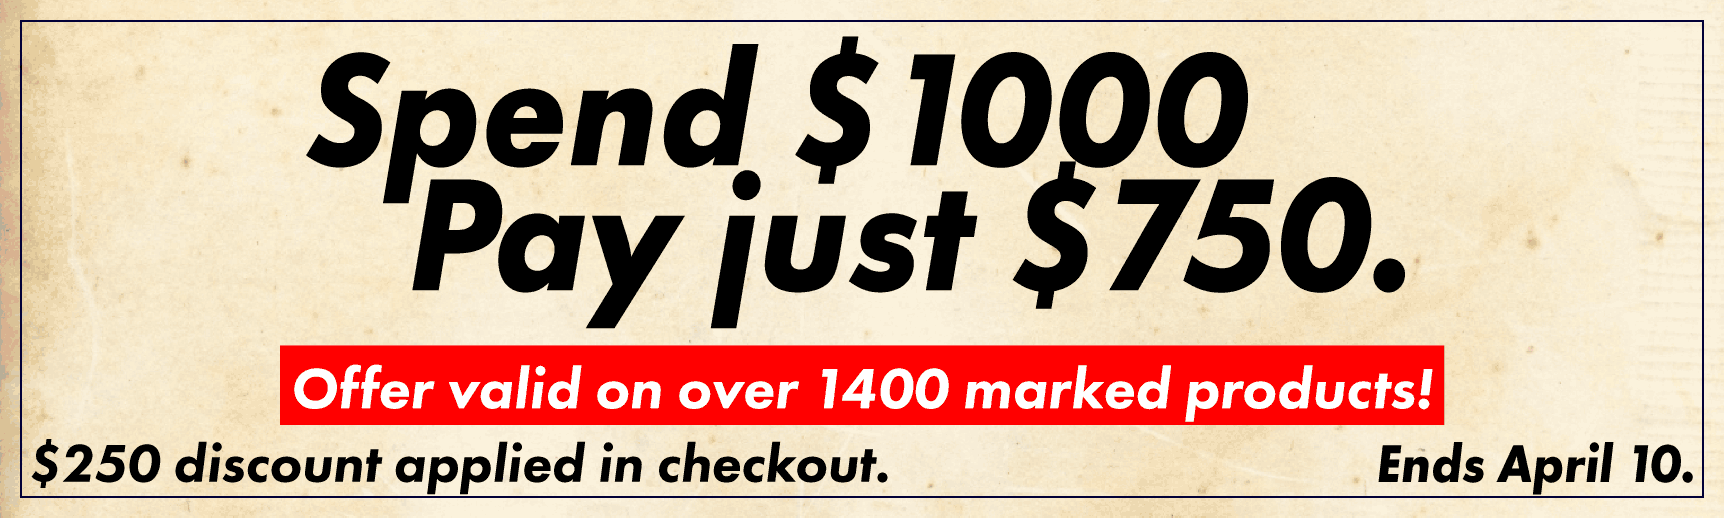 Spend $1000, Pay just $750! Offer valid on over 1400 marked products! $250 discount applied in checkout. Ends April 10.